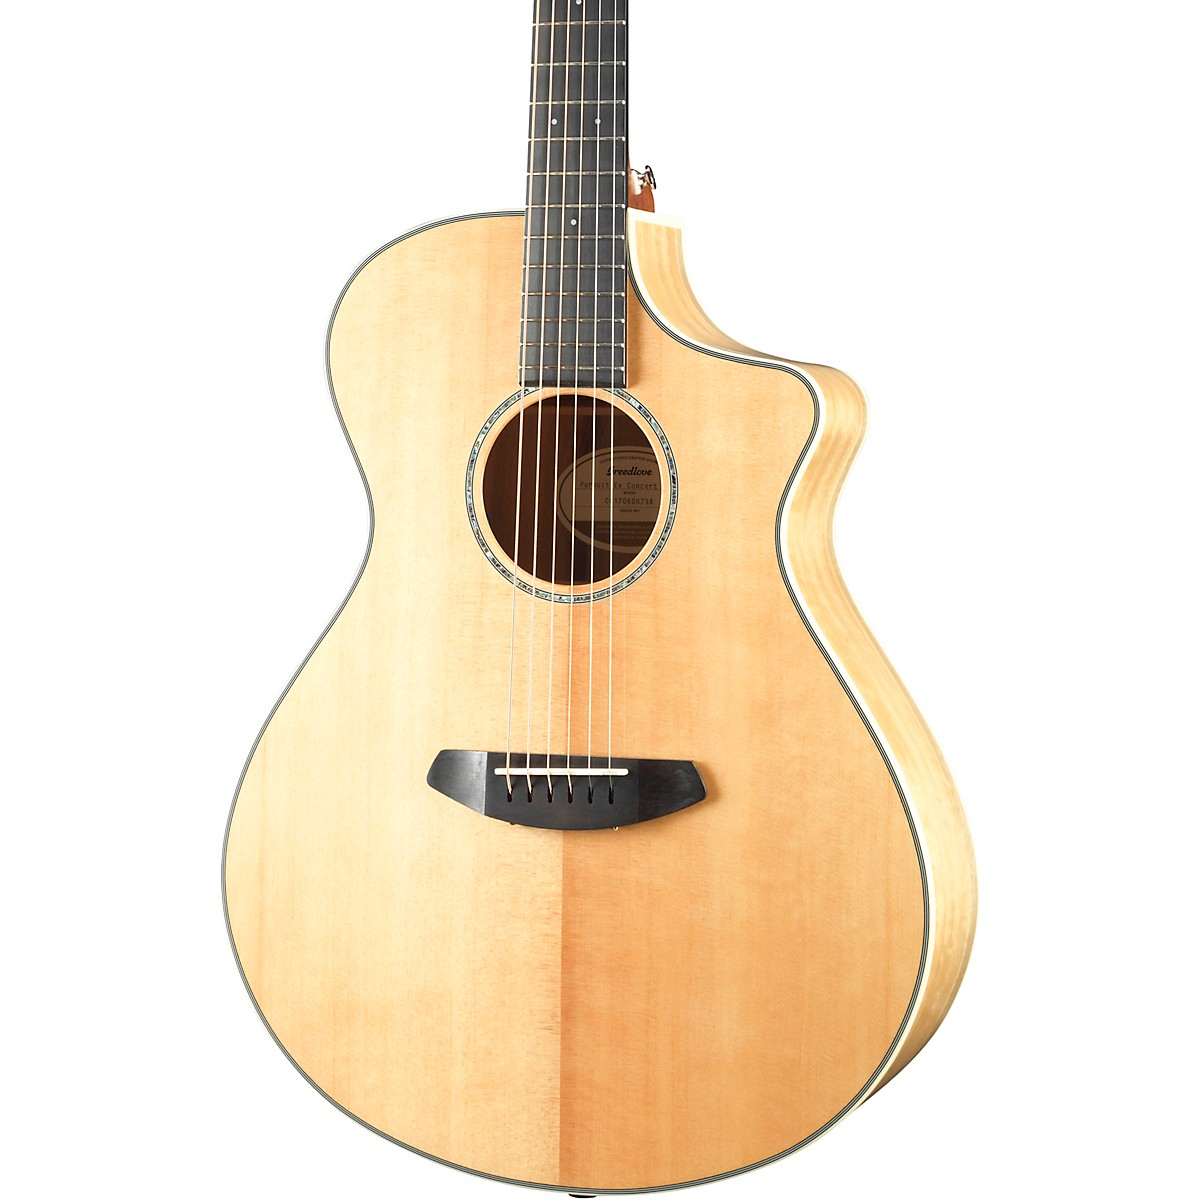 Breedlove Pursuit Exotic Sitka-Myrtlewood Concert Cutaway CE Acoustic-Electric Guitar